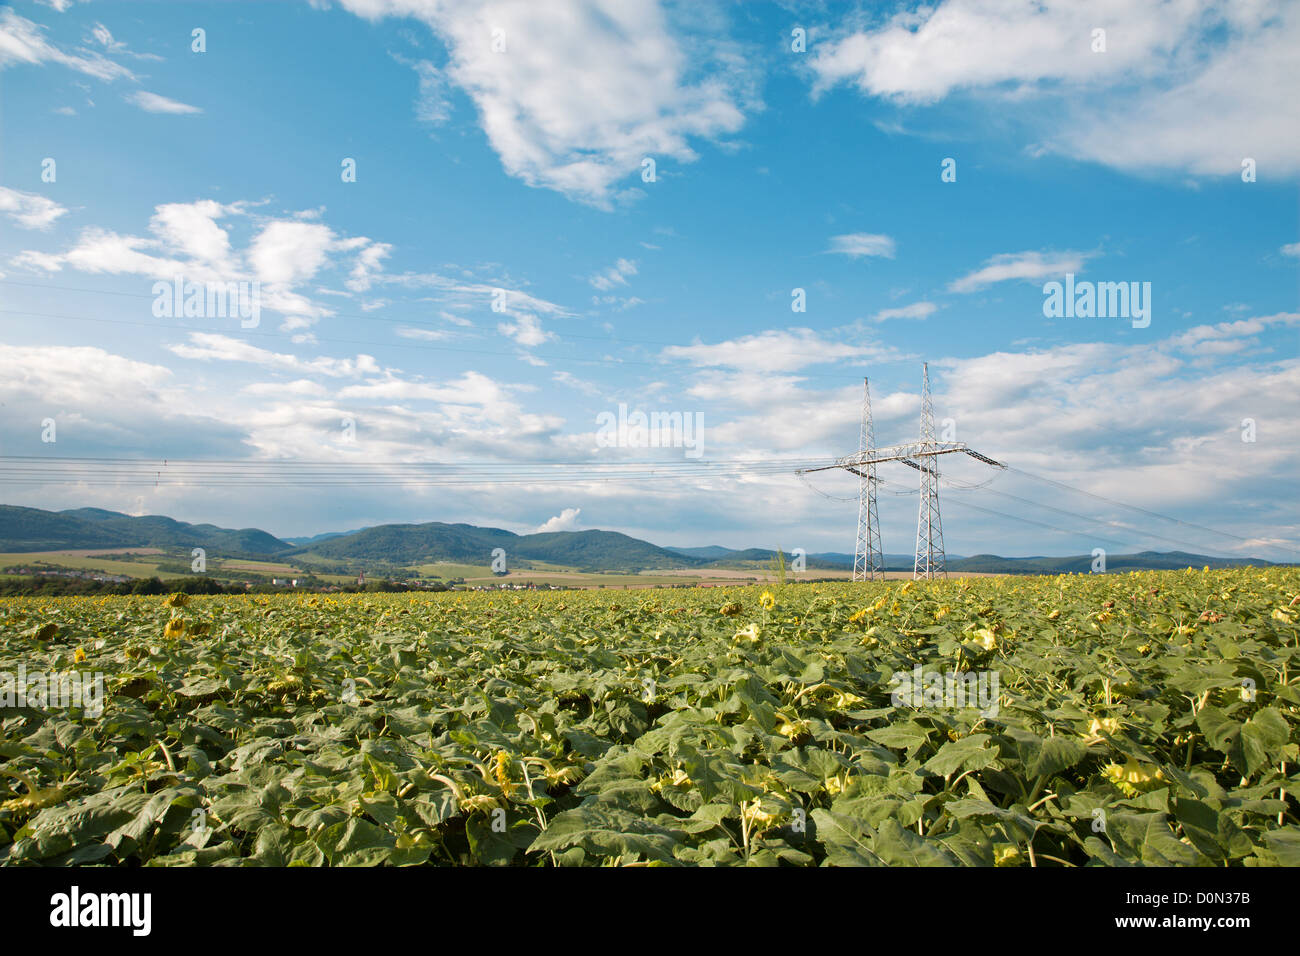 field of sunflowers and sky and mast - Stock Image